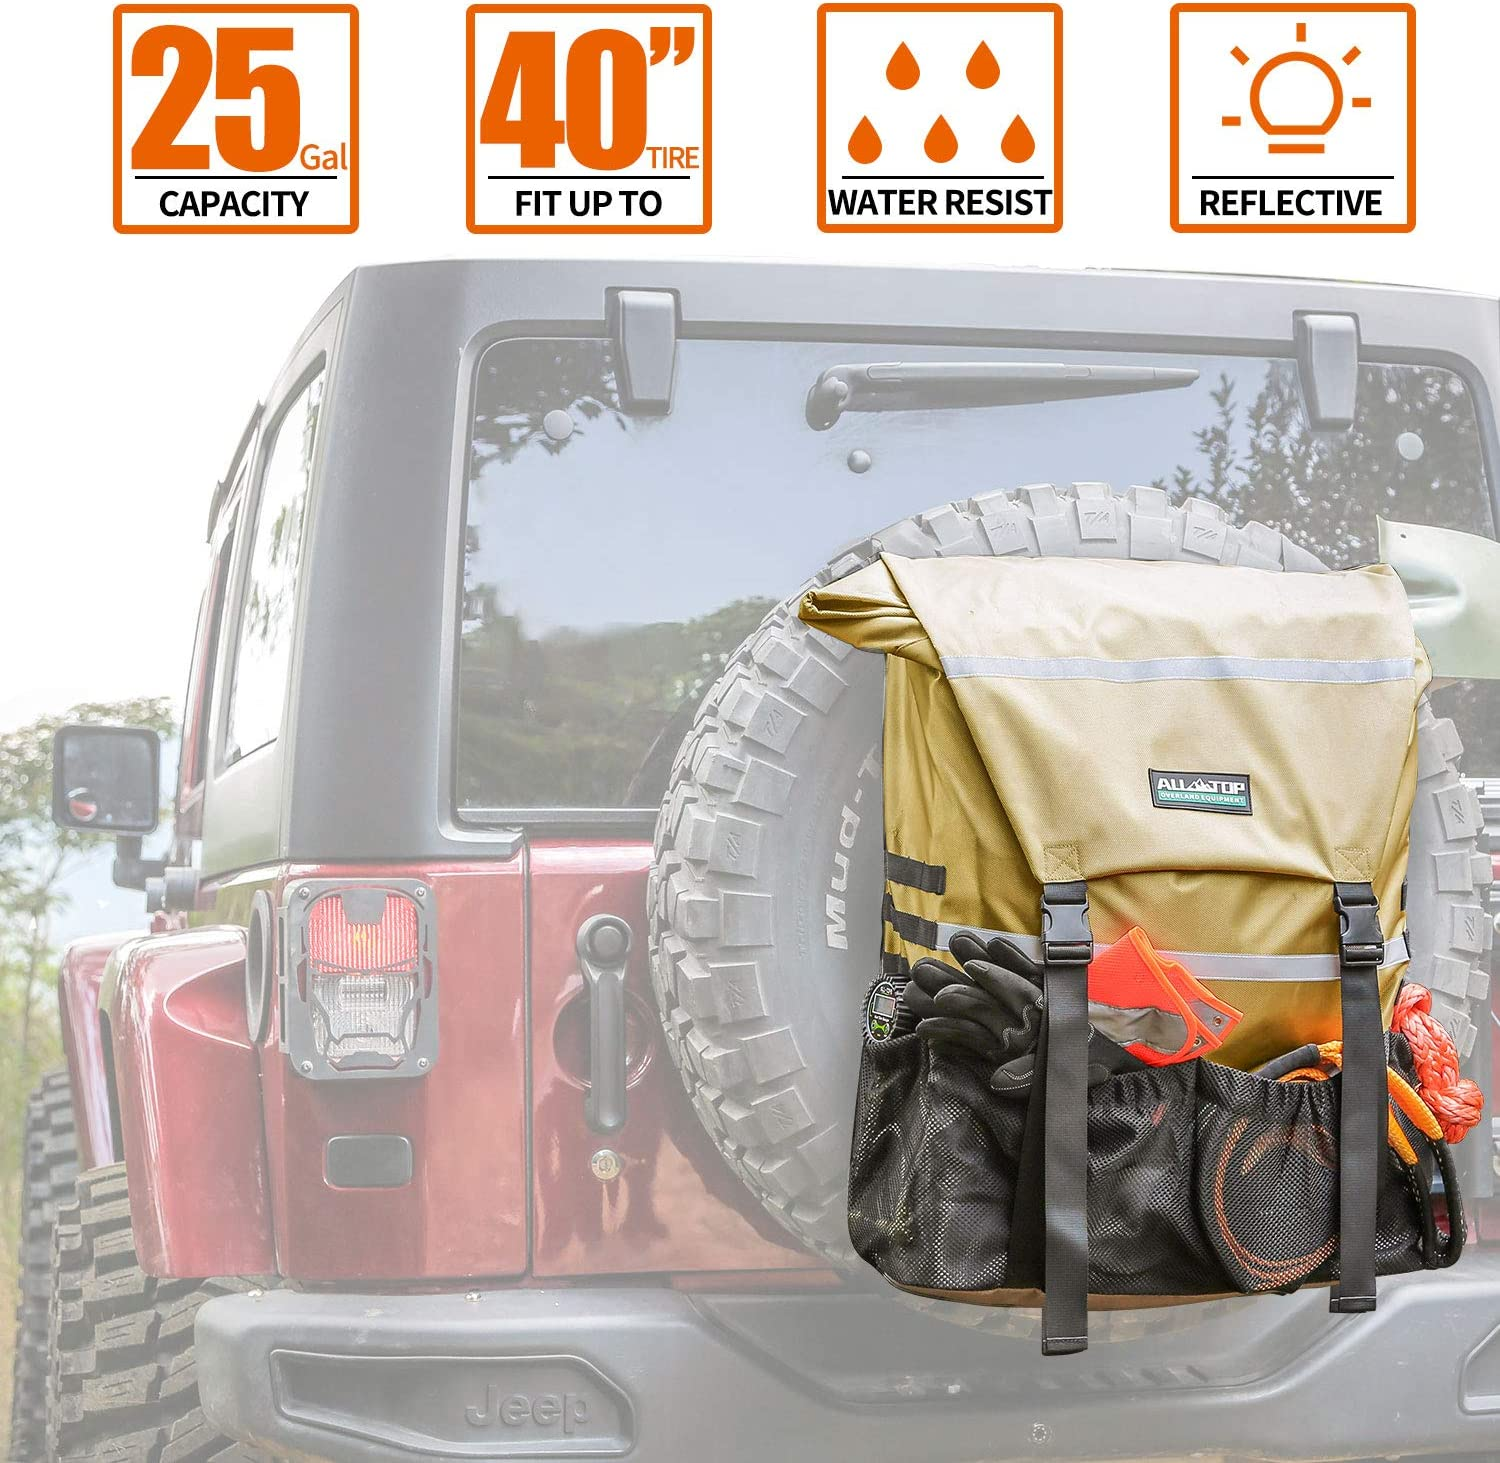 ALL-TOP Overland Max 67% OFF Series Spare Tire Trash Ranking TOP14 Bag Yellow Tan - Tool